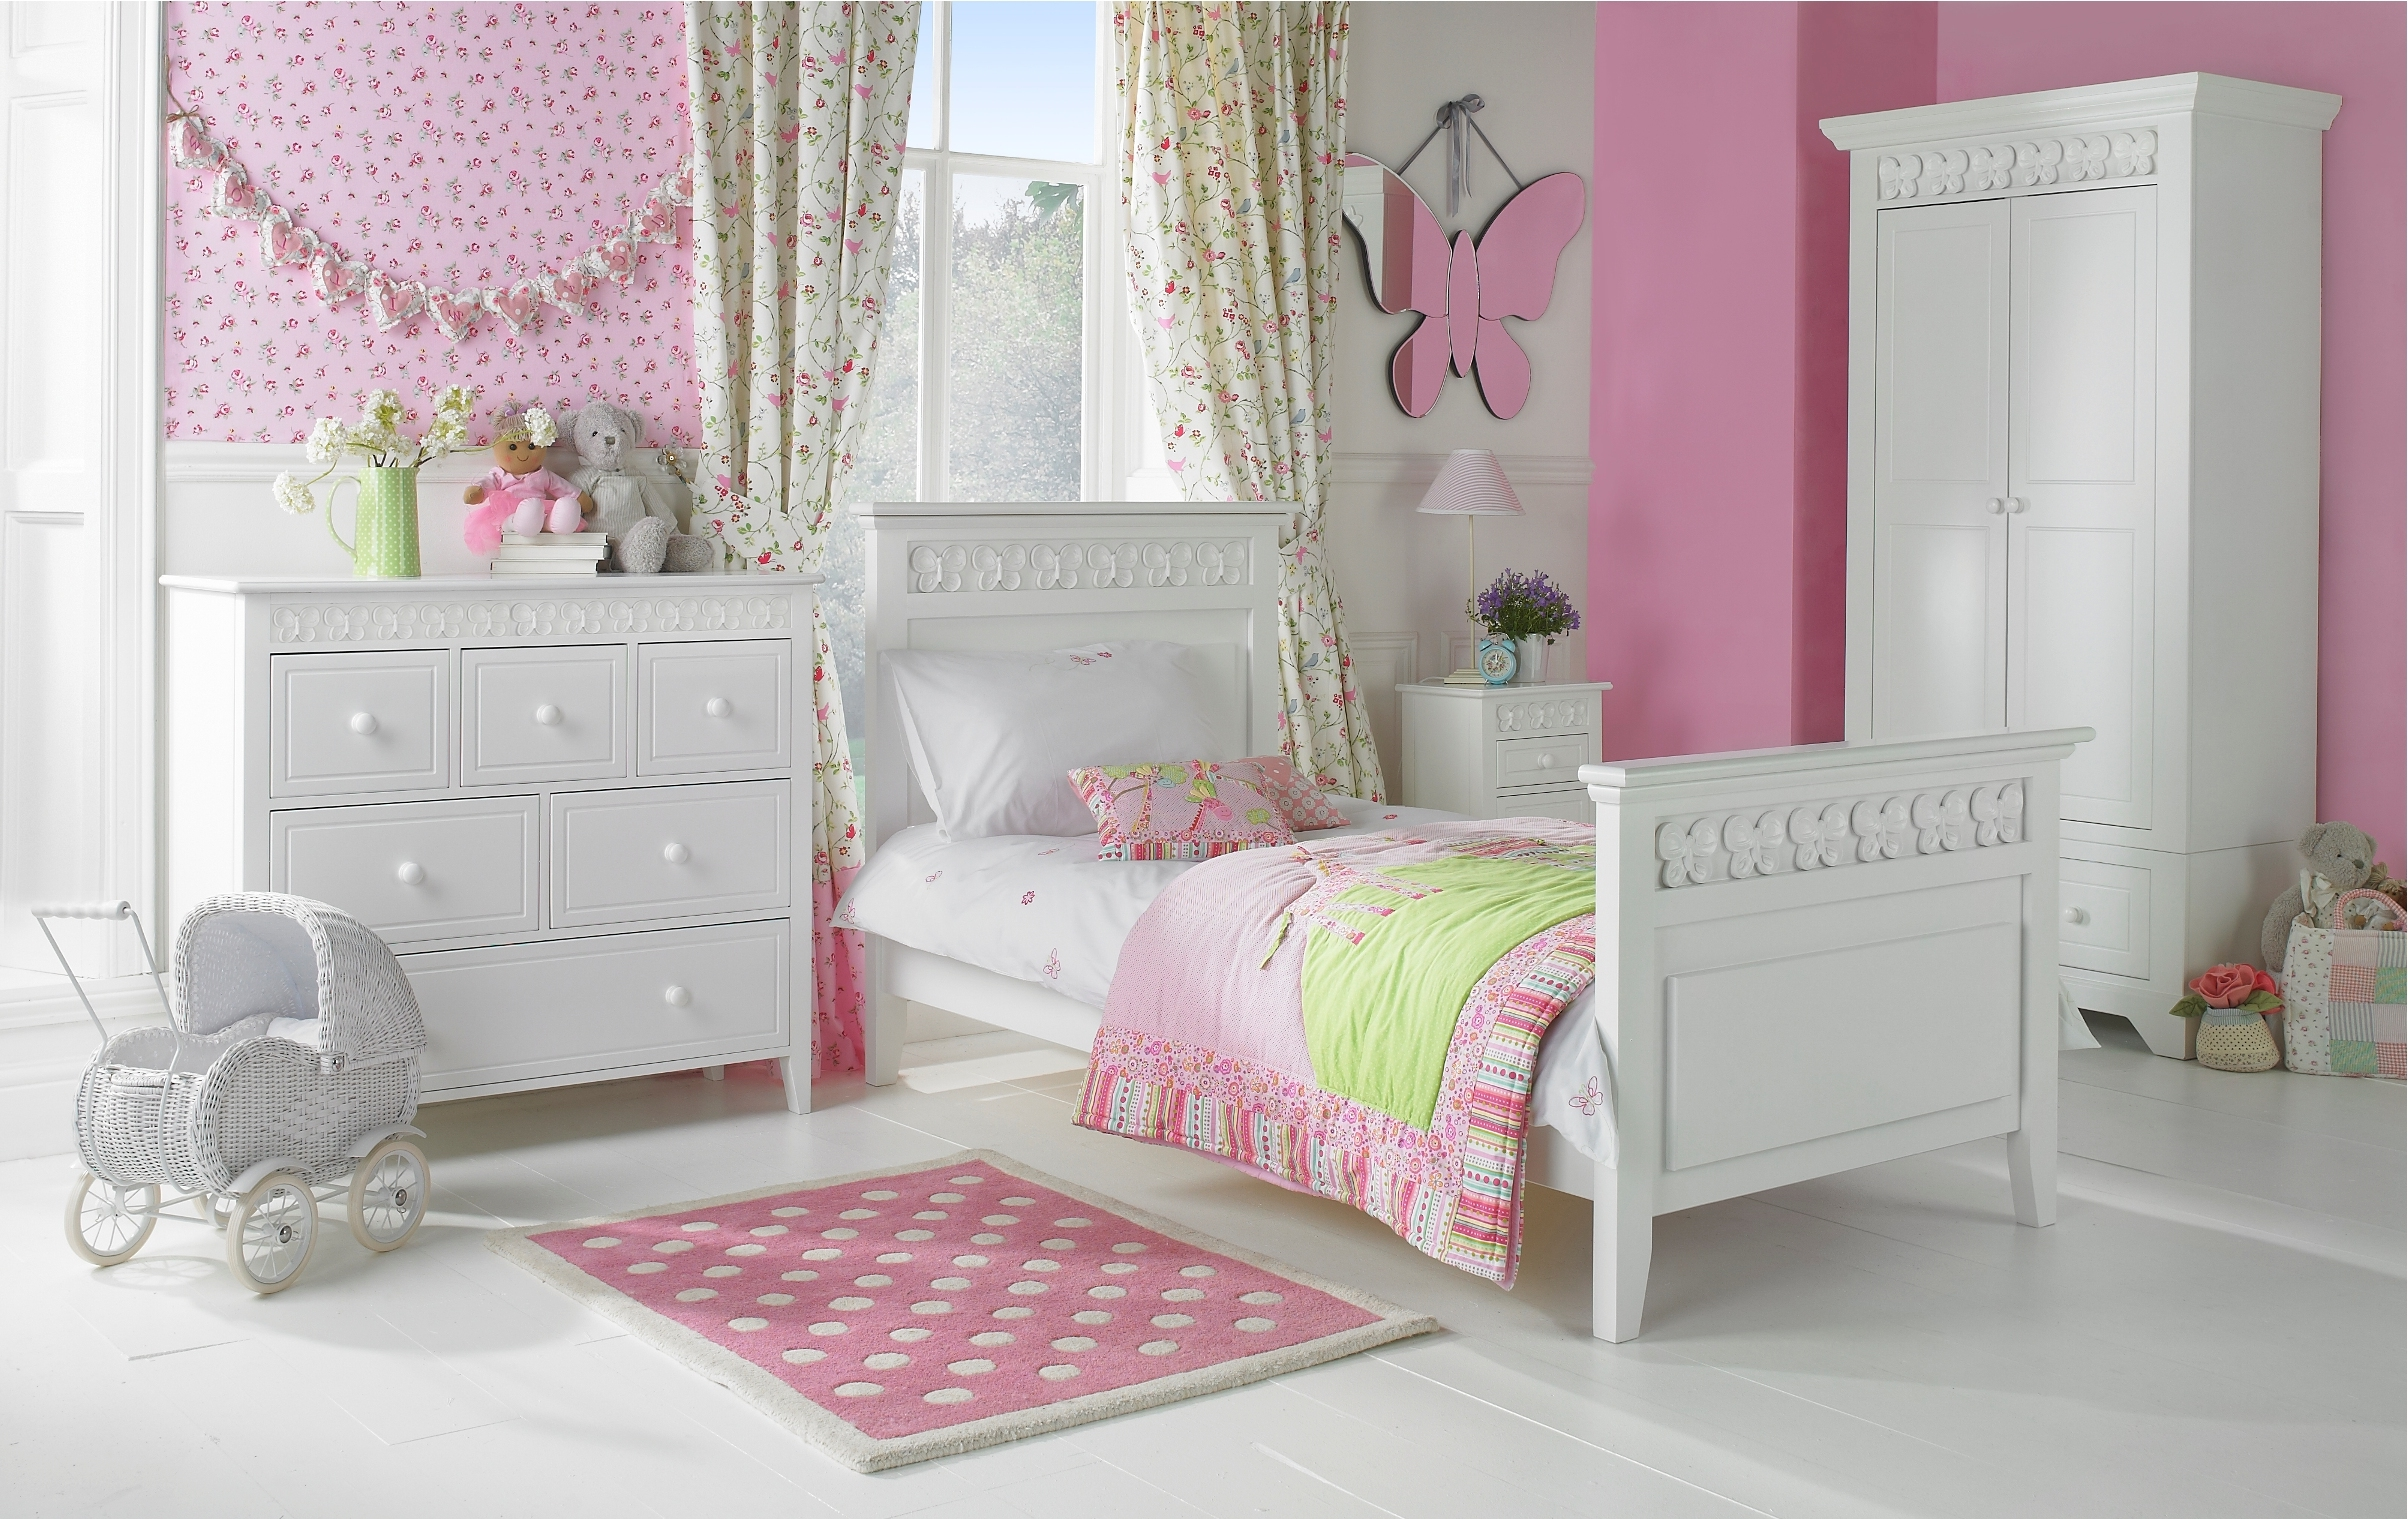 Clean white girls bedroom set with floral window curtains for Kitchen colors with white cabinets with polka dot wall art